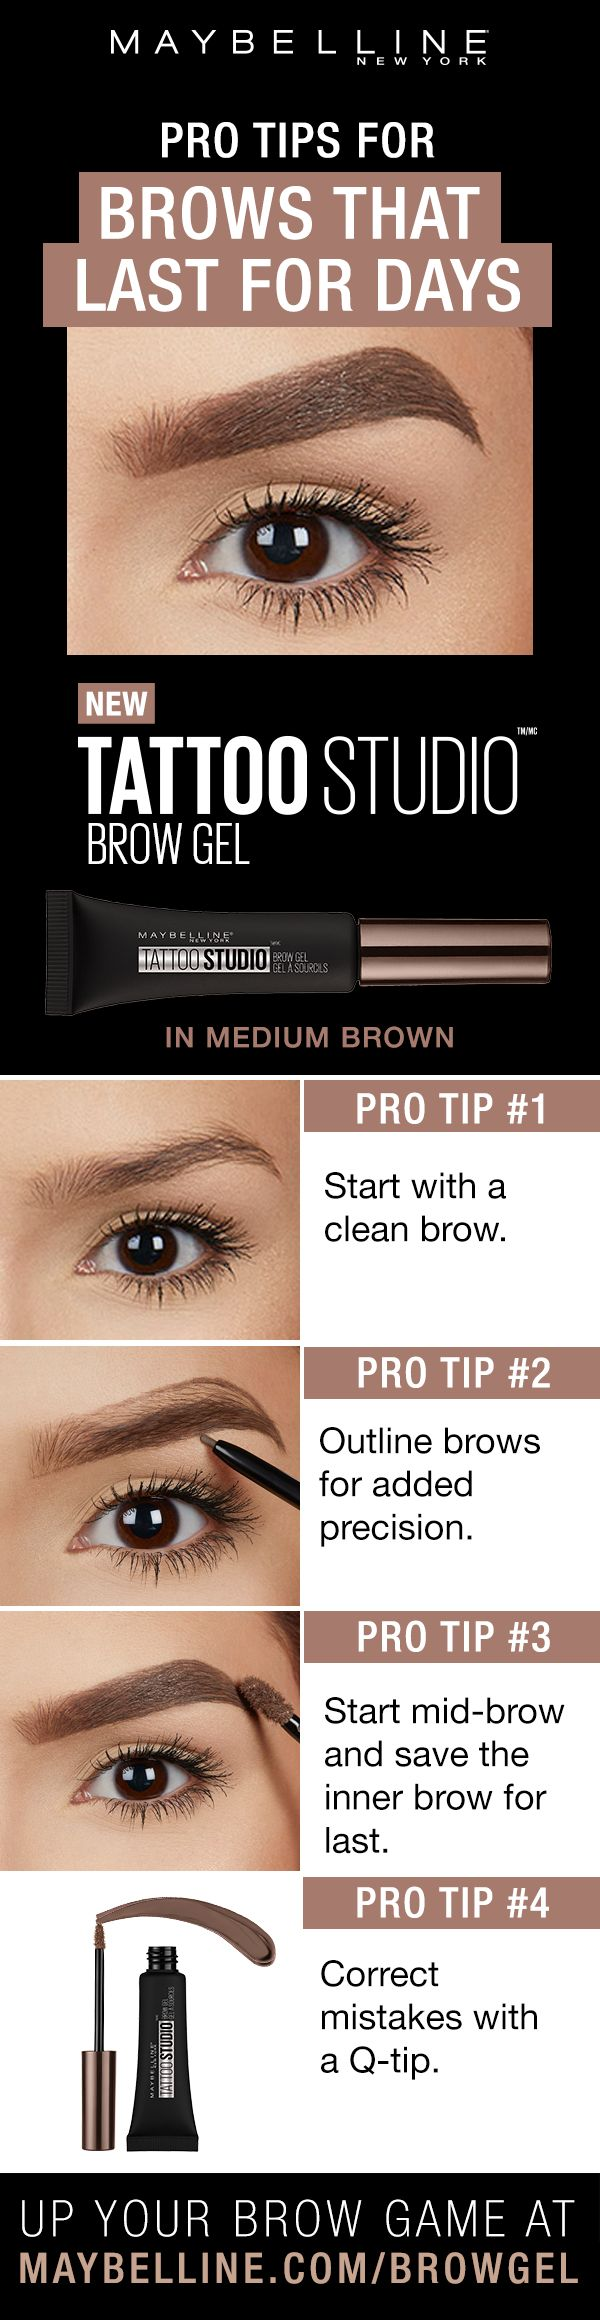 Tattoo Studio Waterproof Eyebrow Gel creates fuller-looking definition that last for days. Fill and color your eyebrows with this ultra-resistant and waterproof eyebrow gel. The sculpting tip and eyebrow spoolie brush work together to create fuller-looking eyebrows that last for days. Make sure to start off with a clean brow, For added precision, you can line brows with Brow Micro Pencil and start applying the gel in the middle of the brow to the tip. And to clean up brows, use a Q-Tip!